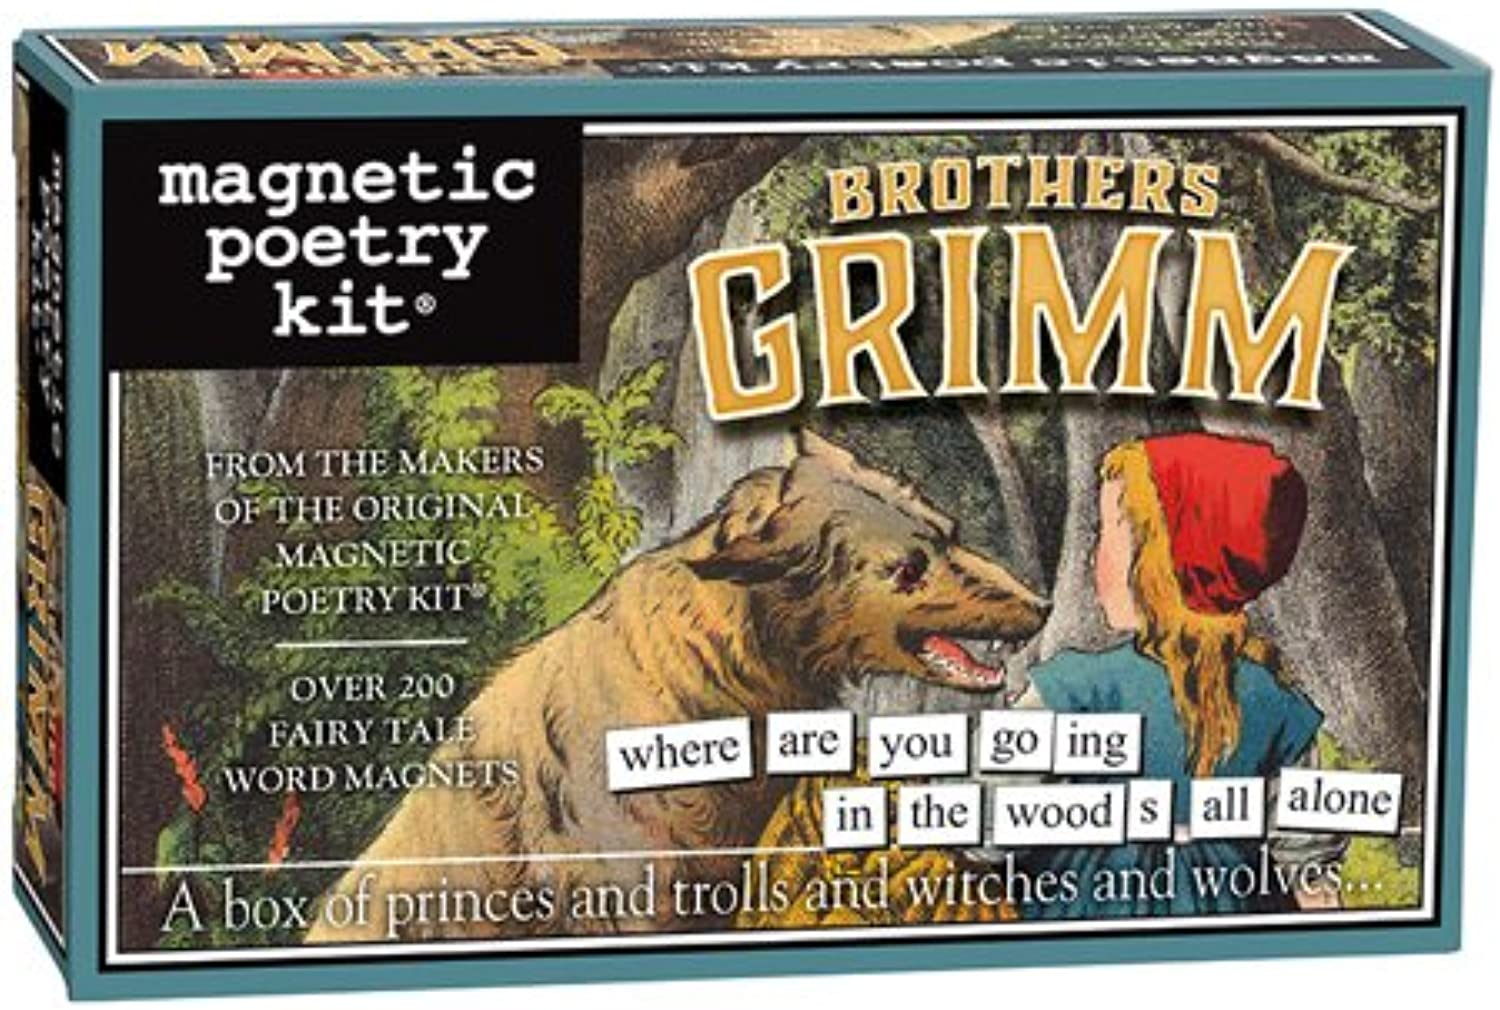 Magnetic Poetry - Bredhers Grimm Kit - Words for Refrigerator - Write Poems and Letters on The Fridge - Made in The USA